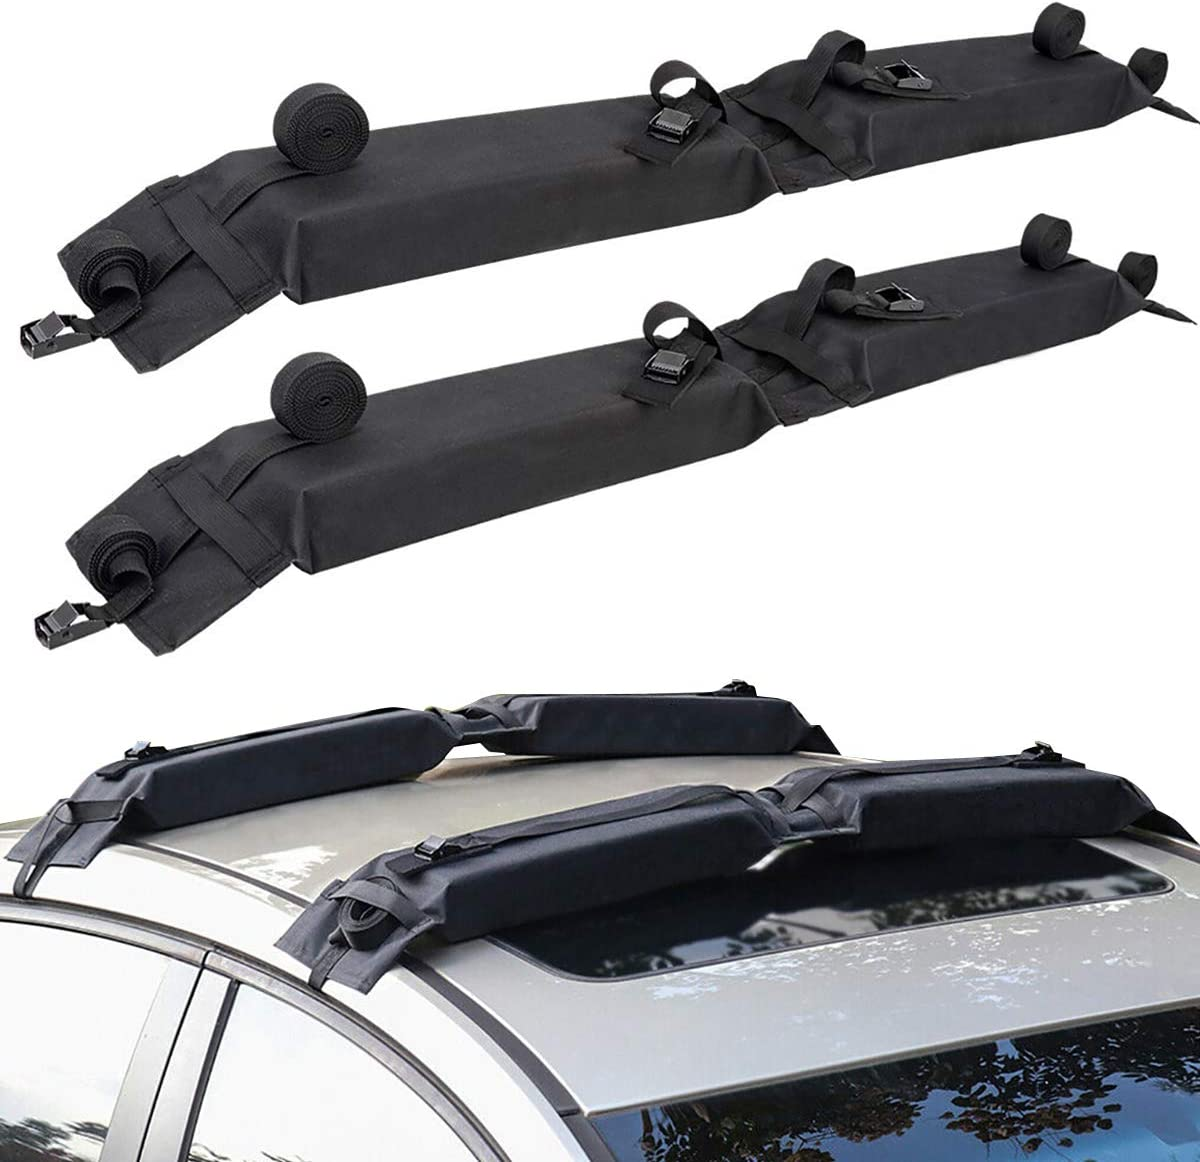 DoCred Soft Roof Rack Pad Universal Folding Lightweight Anti-Vibration Roof Rack pad for Kayak//Canoe//Surfboard//Paddle Board//SUP//Snow Board and Water Sports